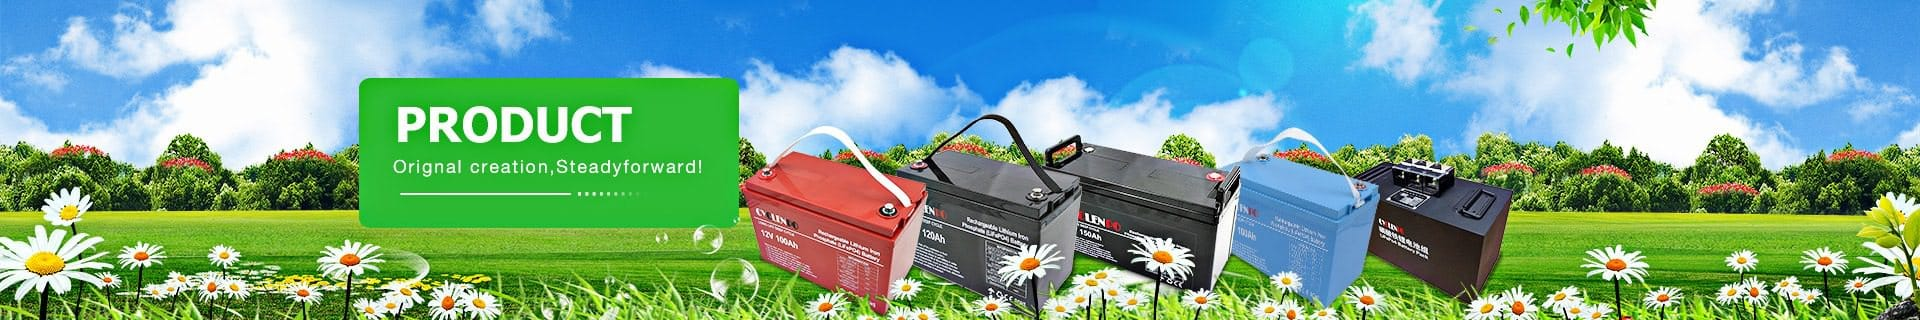 lifepo4 battery 12v, 12v lithium ion battery, lithium ion marine battery